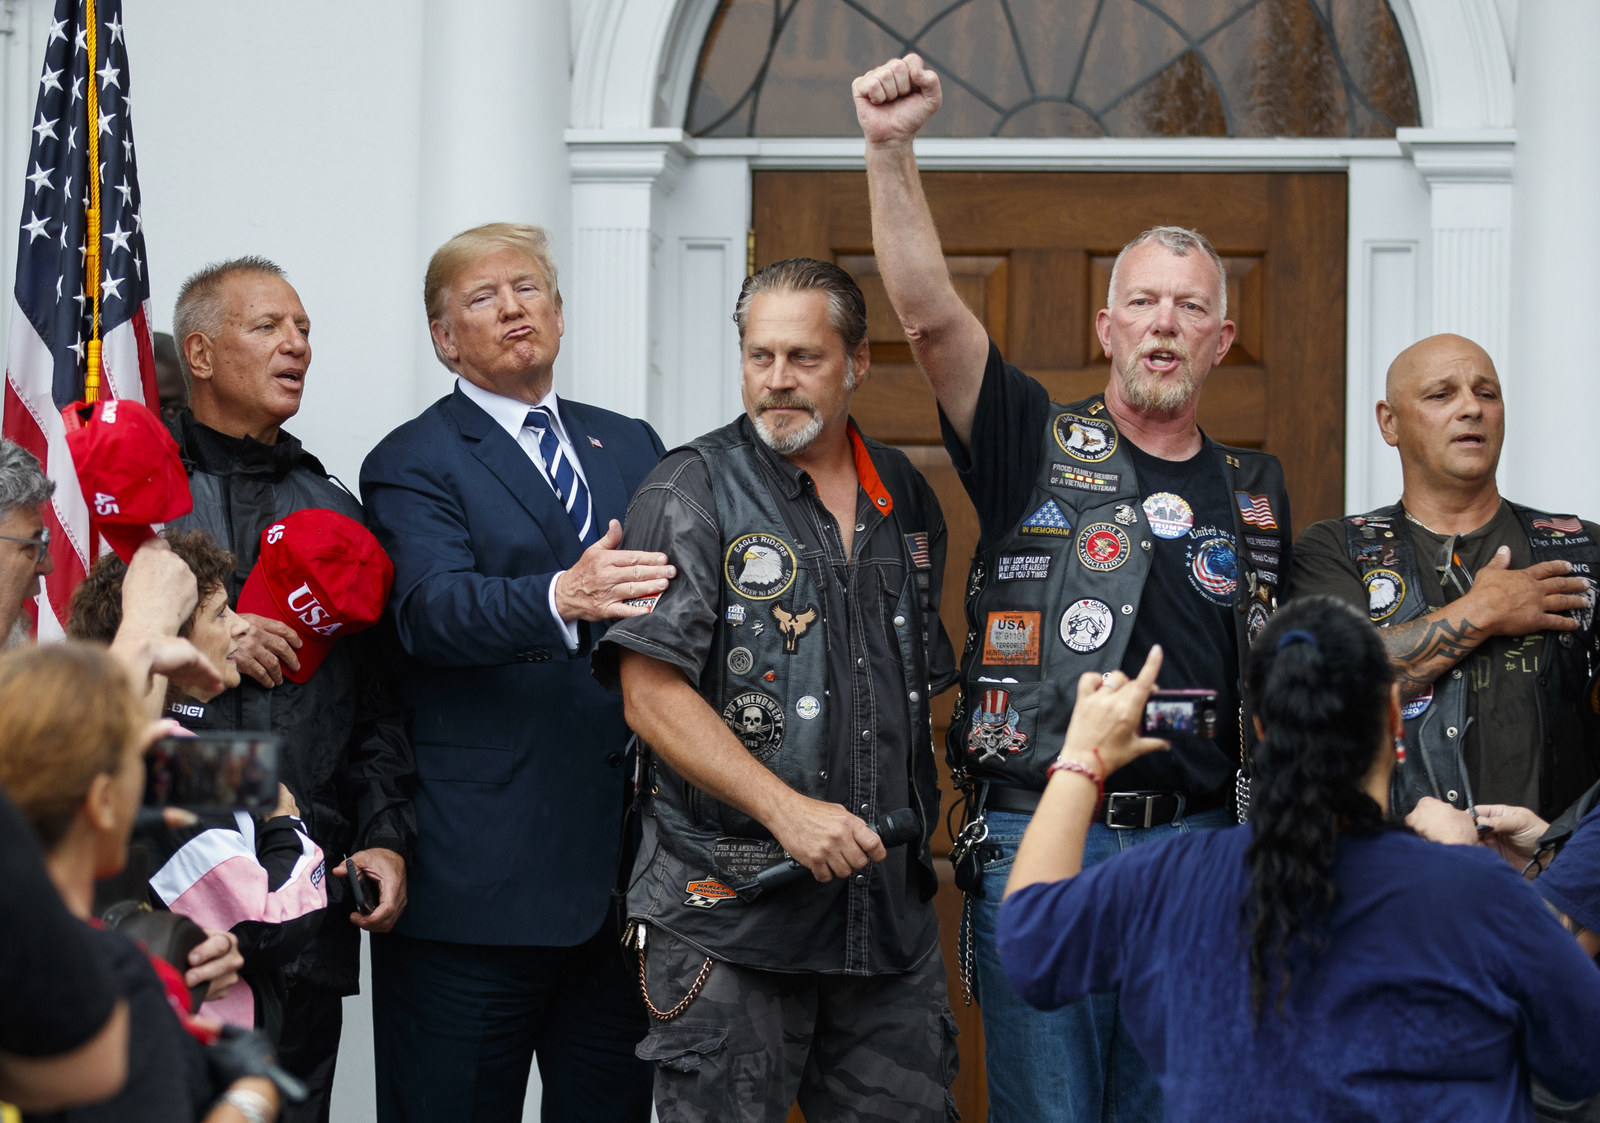 President Donald Trump stands in the rain with members of Bikers for Trump and supported after saying the Pledge of Allegiance, Saturday, Aug. 11, 2018, at the clubhouse of Trump National Golf Club in Bedminster, N.J. (AP Photo/Carolyn Kaster)